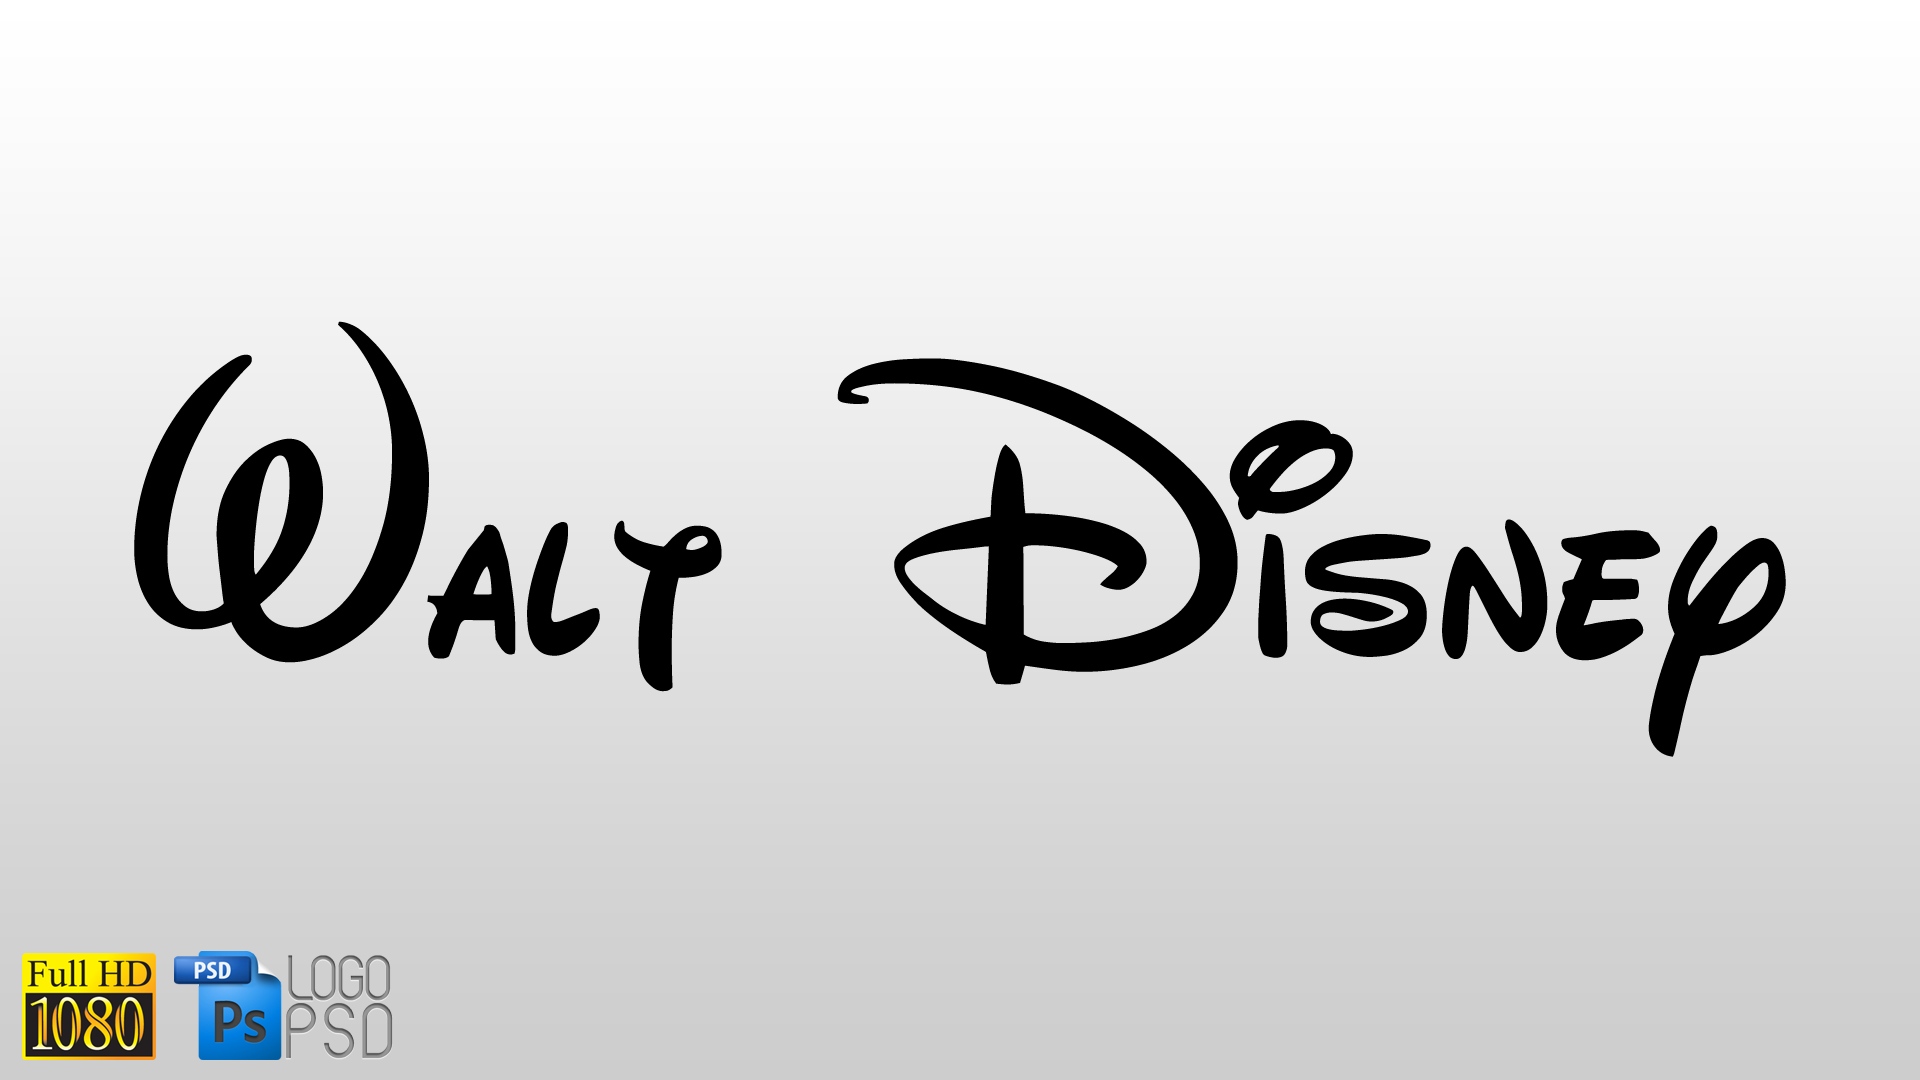 Disney Logo Wallpaper 1431 Hd Wallpapers in Cartoons   Imagesci 1920x1080